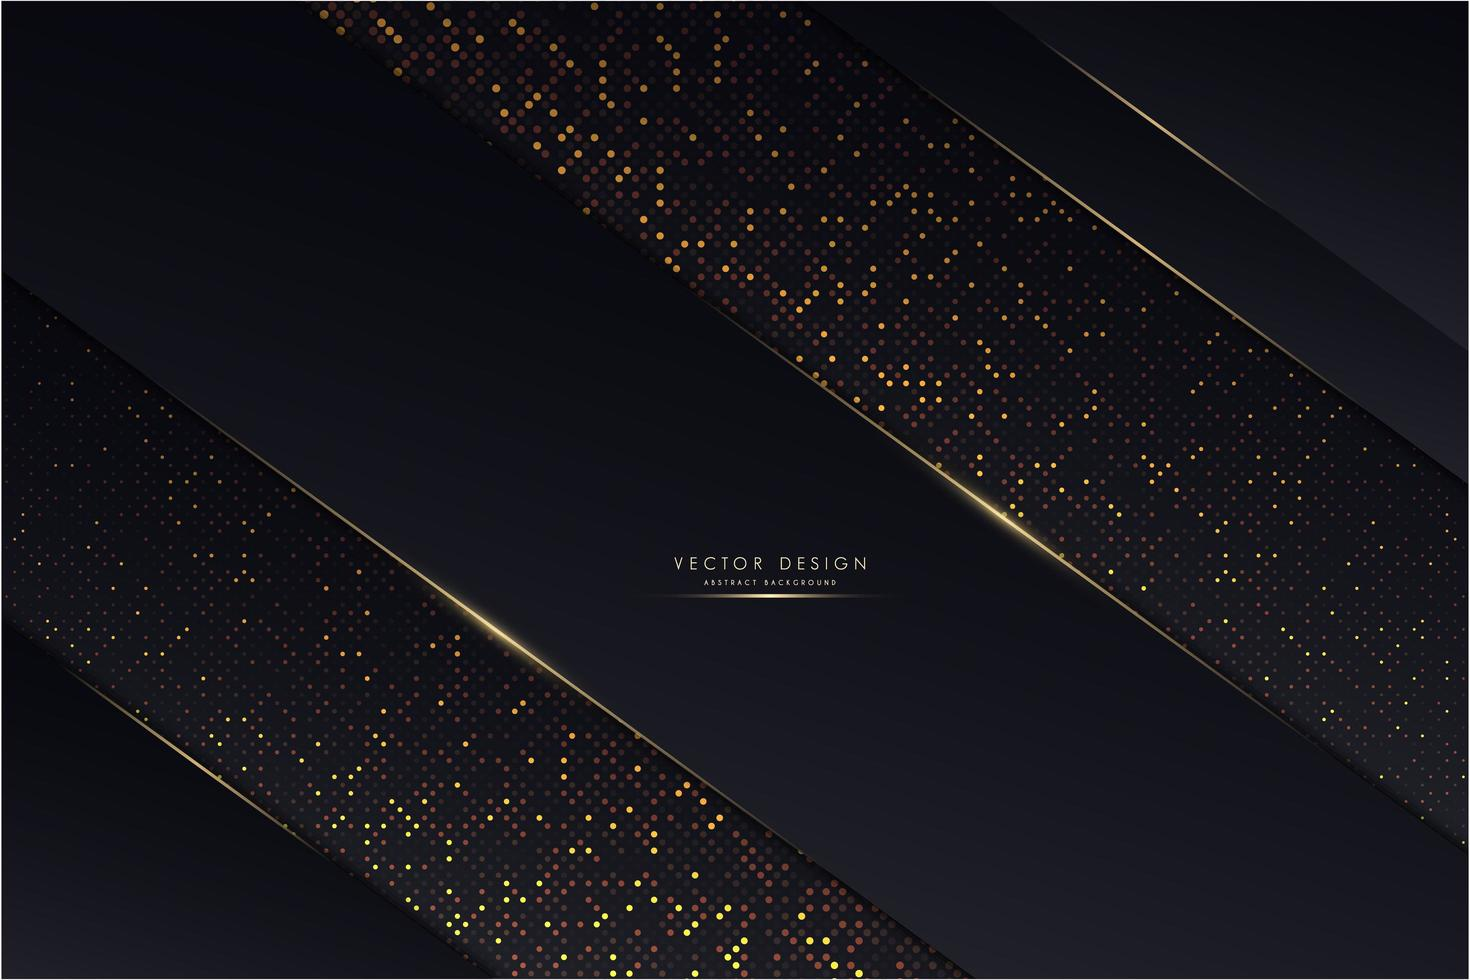 Metallic dark blue angled panels with glowing golden dots vector